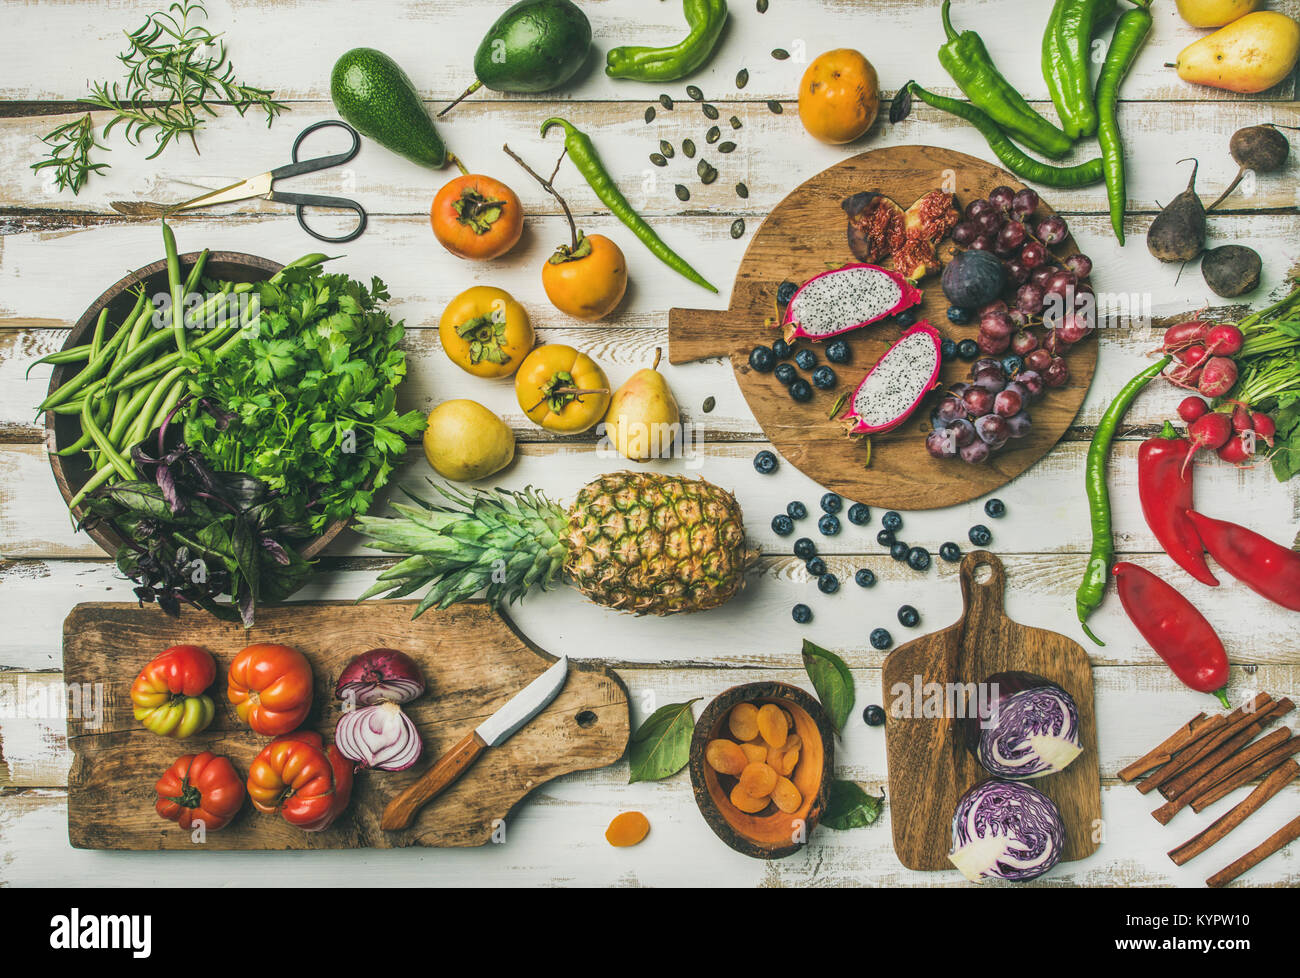 Helathy raw vegan food cooking background. Flat-lay of Fresh fruit, vegetables, greens and superfoods on boards Stock Photo